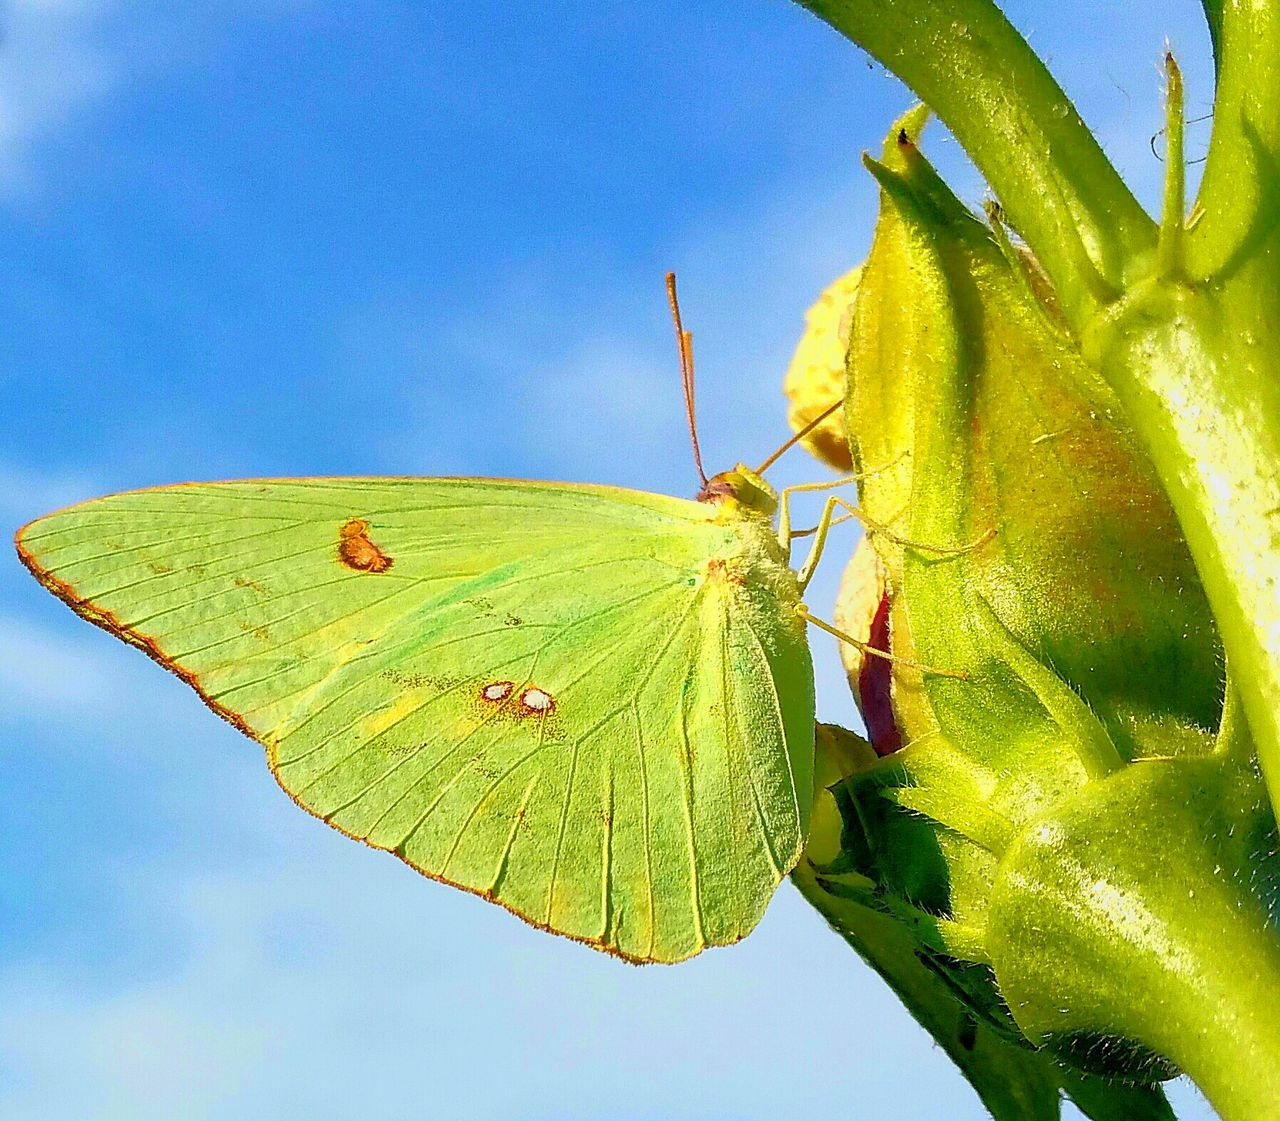 Insect One Animal Animal Themes Animals In The Wild Wildlife Leaf Low Angle View Close-up Butterfly - Insect Butterfly Green Color Yellow Blue Leaf Vein Focus On Foreground Dragonfly Sky Green Perching Animal Wing Insects  Insectinplants No Filter